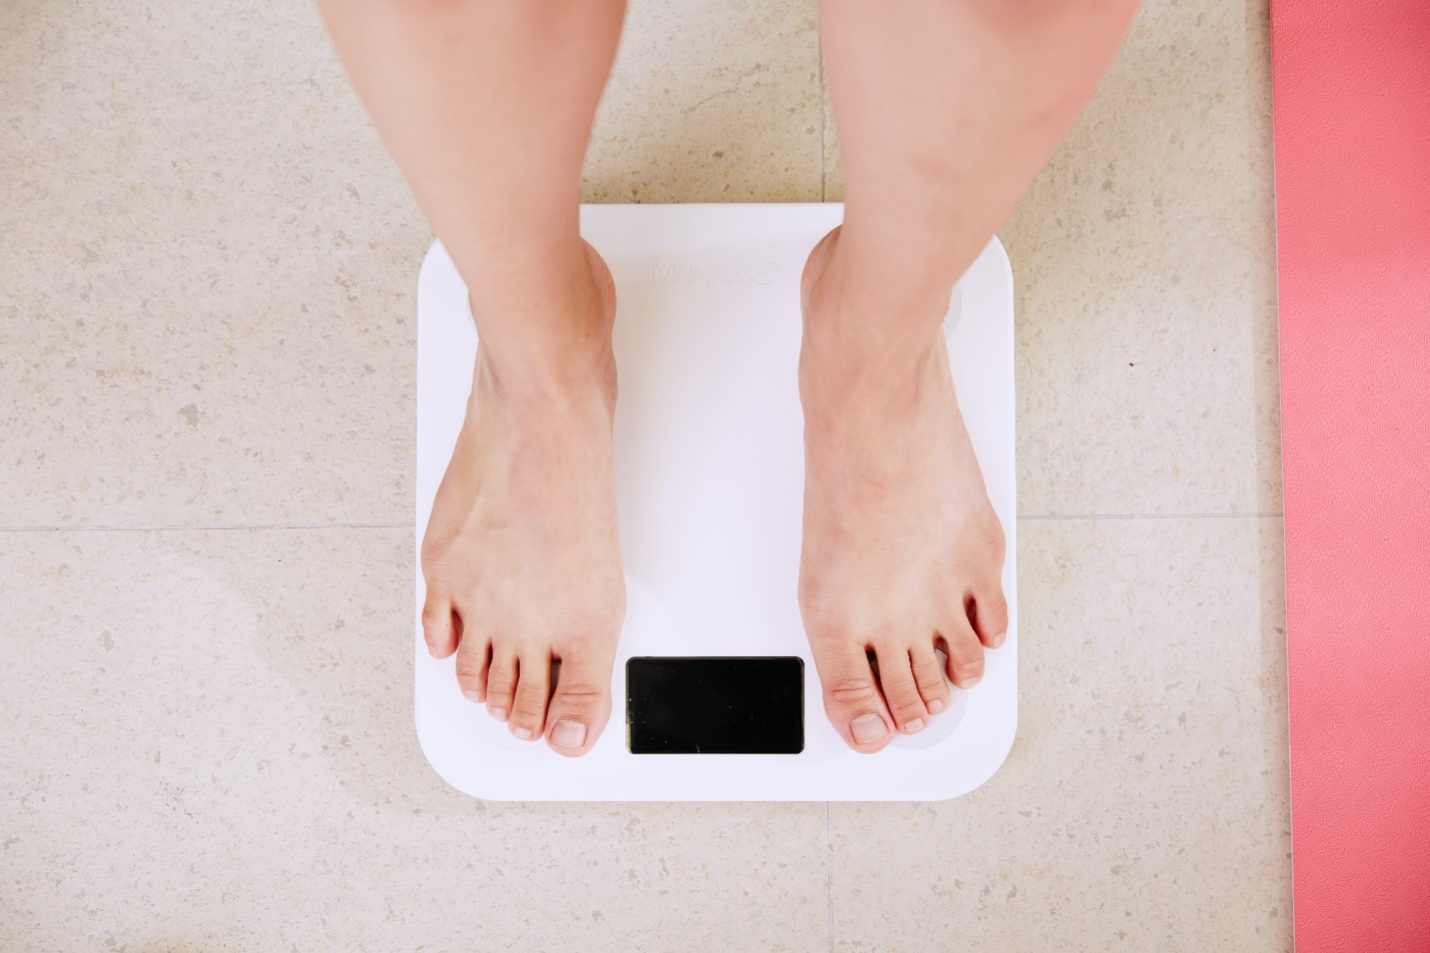 A person standing on the bathroom scale